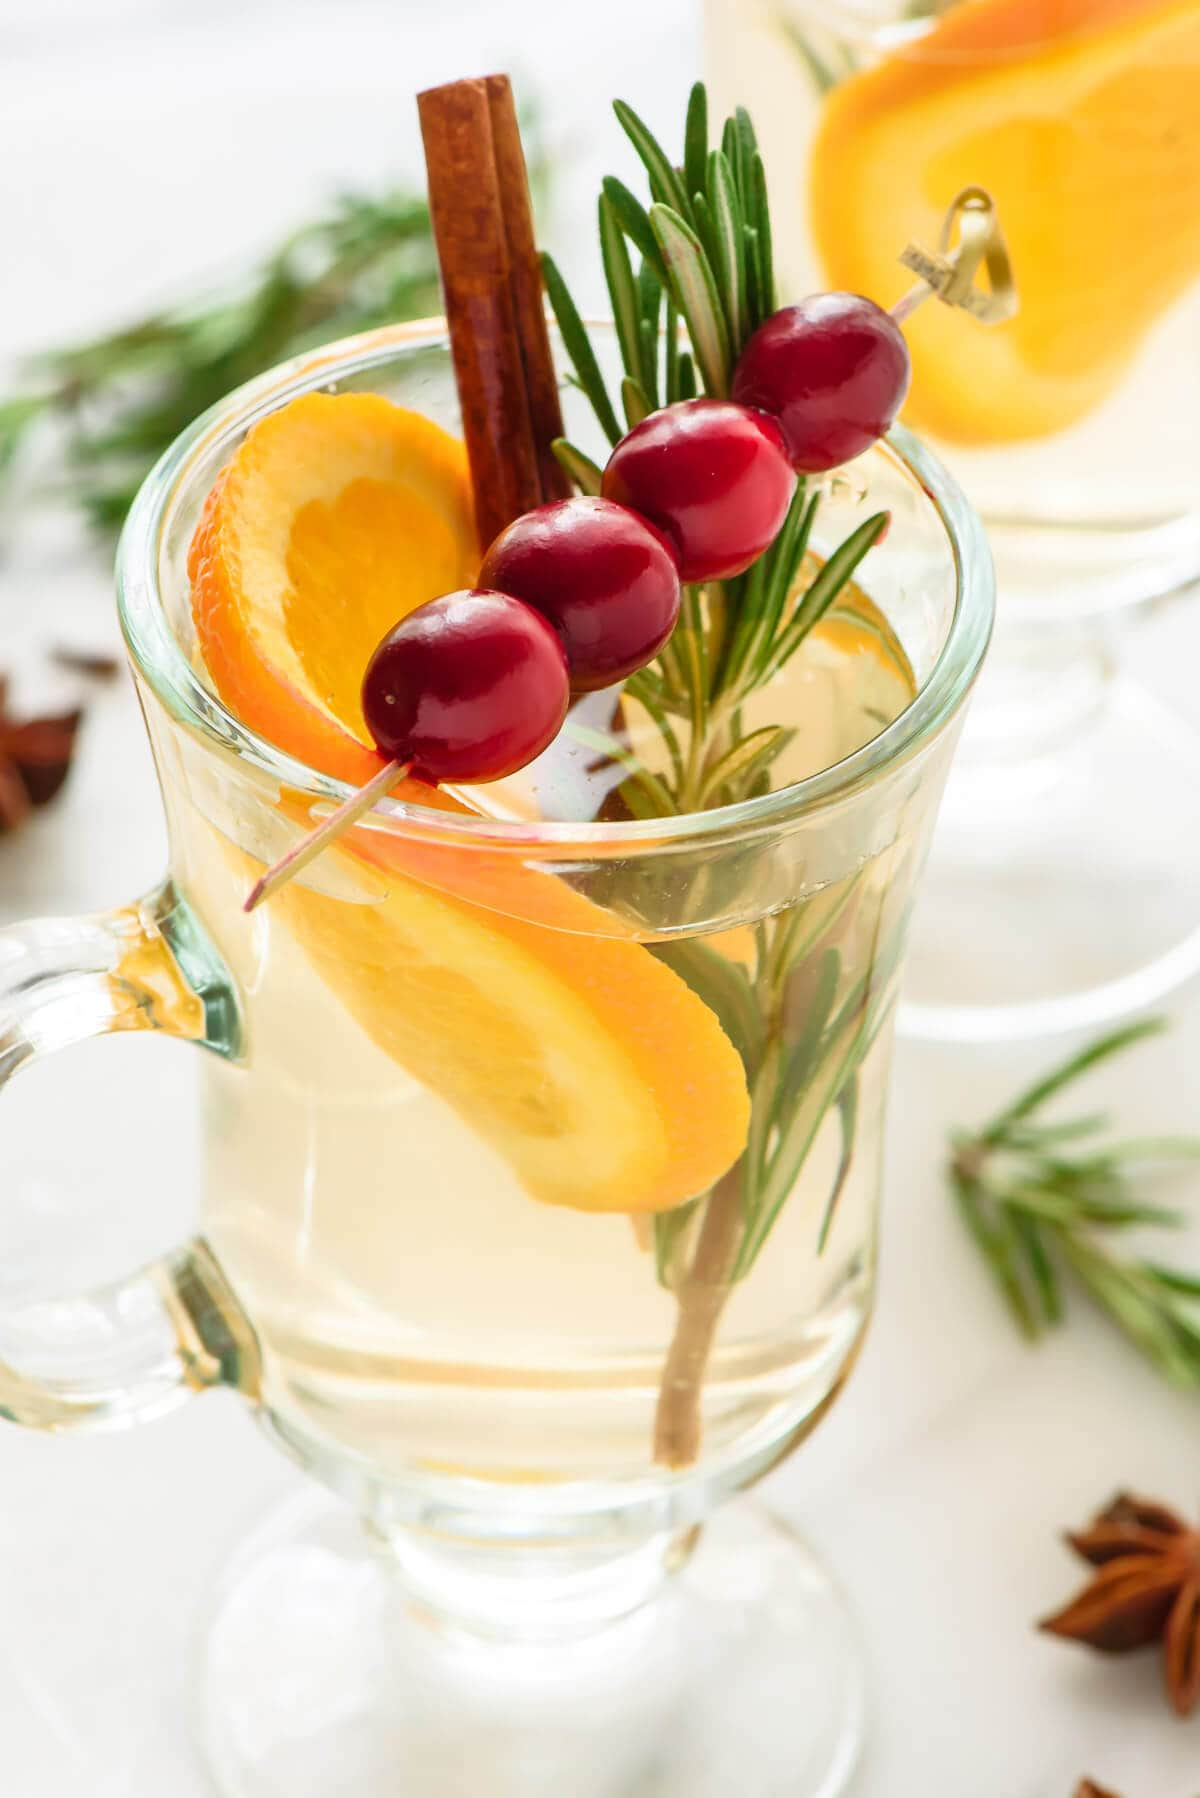 This Slow Cooker White Cranberry Mulled Wine is the perfect holiday party drink recipe! It's festive, easy and cheap to make it big batches!